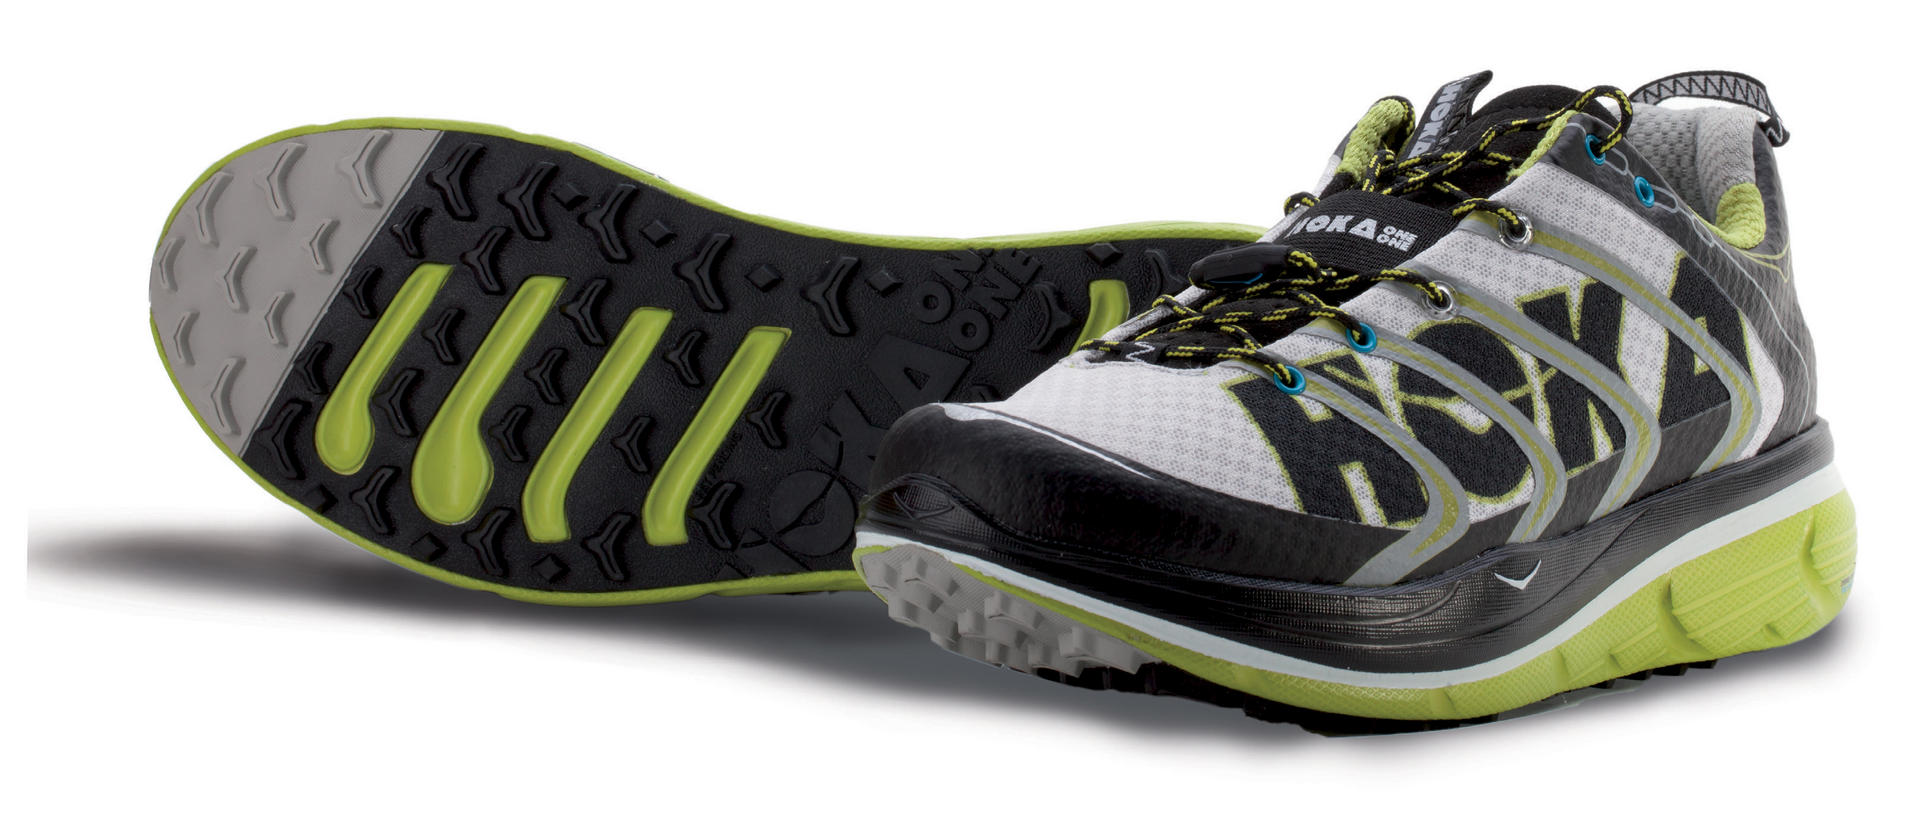 Low Drop Running Shoe Maximum Cushioning Light Weight